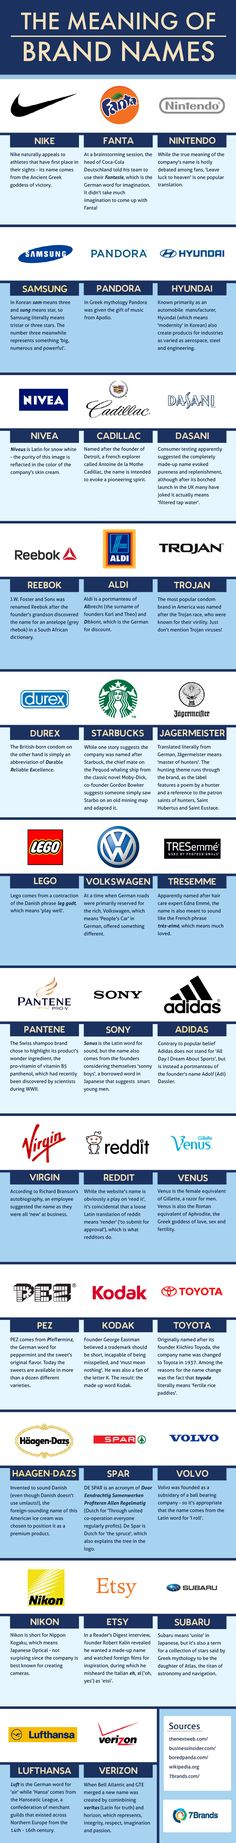 The Meaning of Brand Names -#infographic